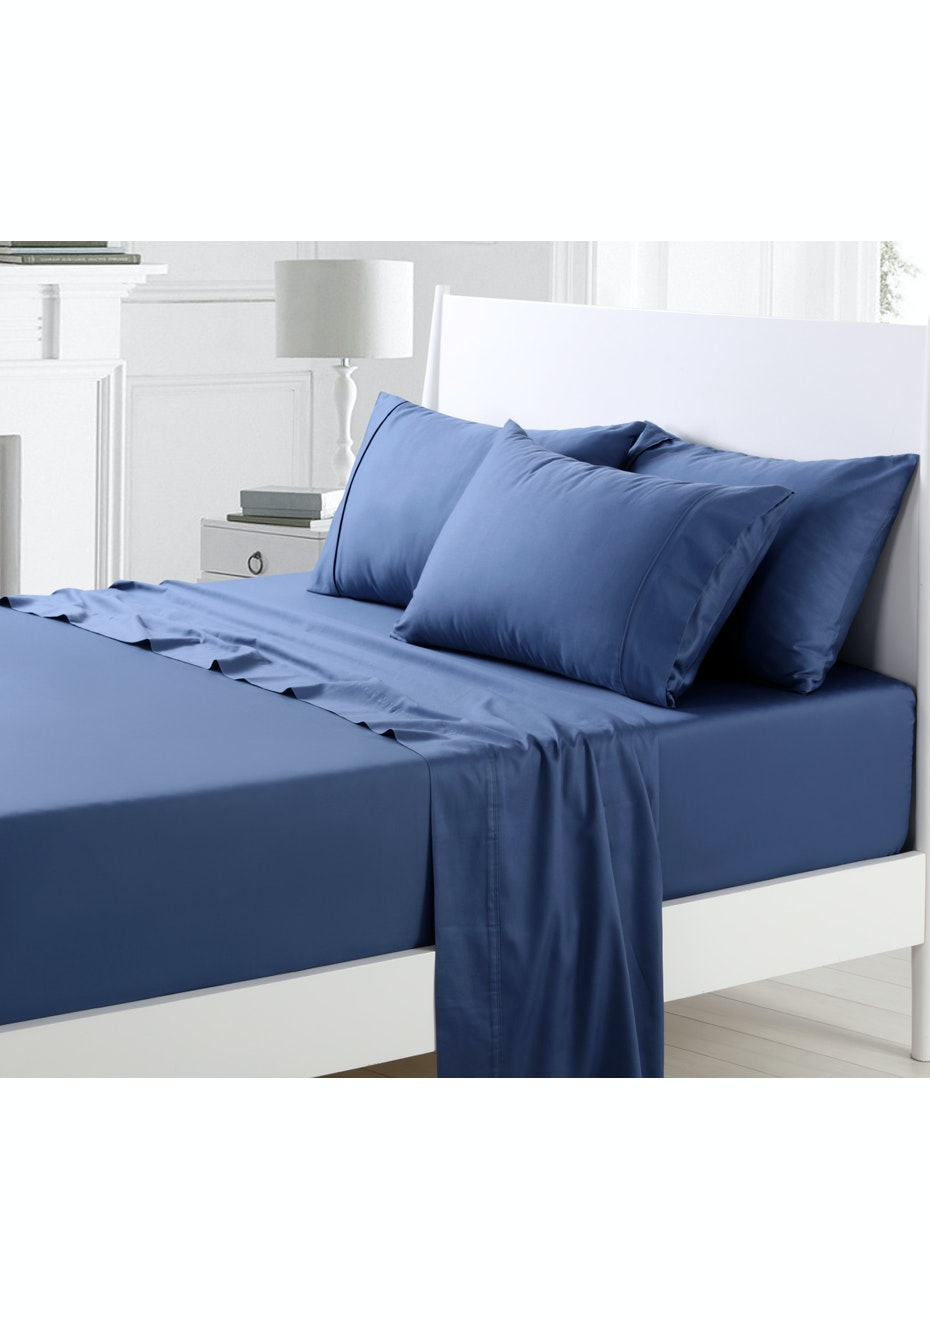 Monaco Blue 300TC Cotton Sateen Sheet Set - Queen Bed